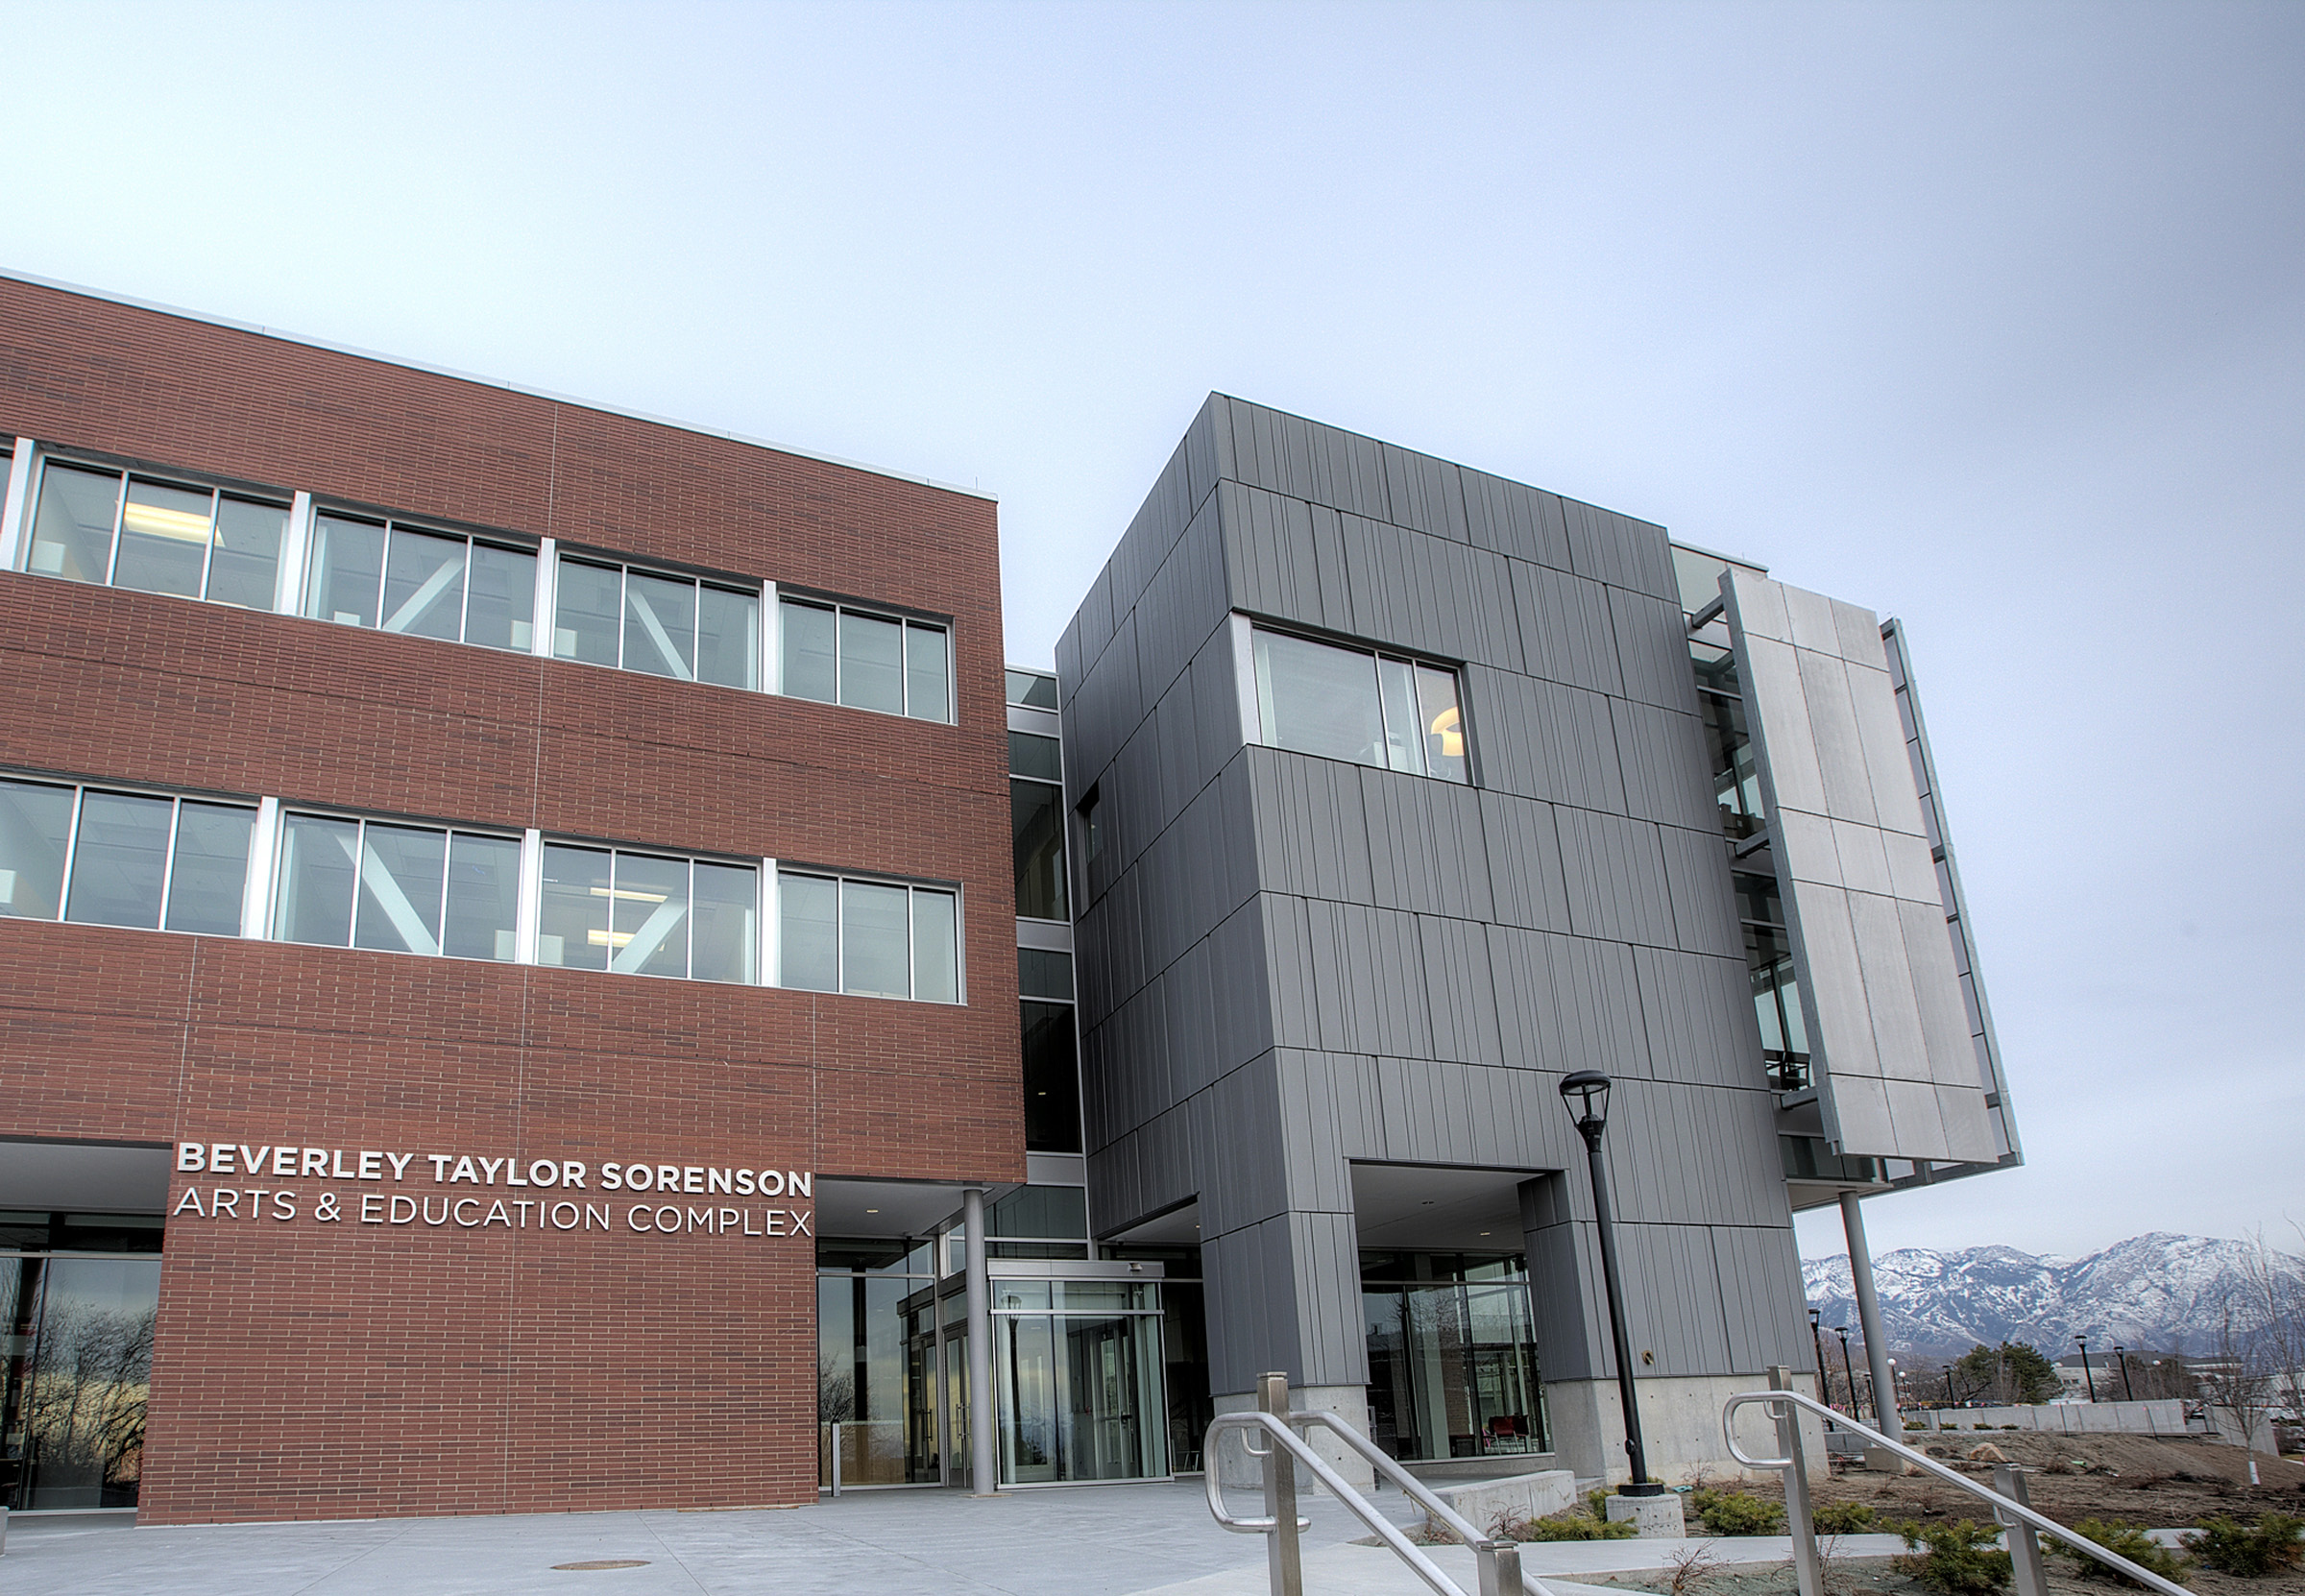 The University of Utah's new Beverley Taylor Sorenson Arts and Education Complex was dedicated Thursday, Feb. 27, and was made possible by a leading $12.5 million donation from the Sorenson Legacy Foundation, the largest single donation in support of arts and education in university history.